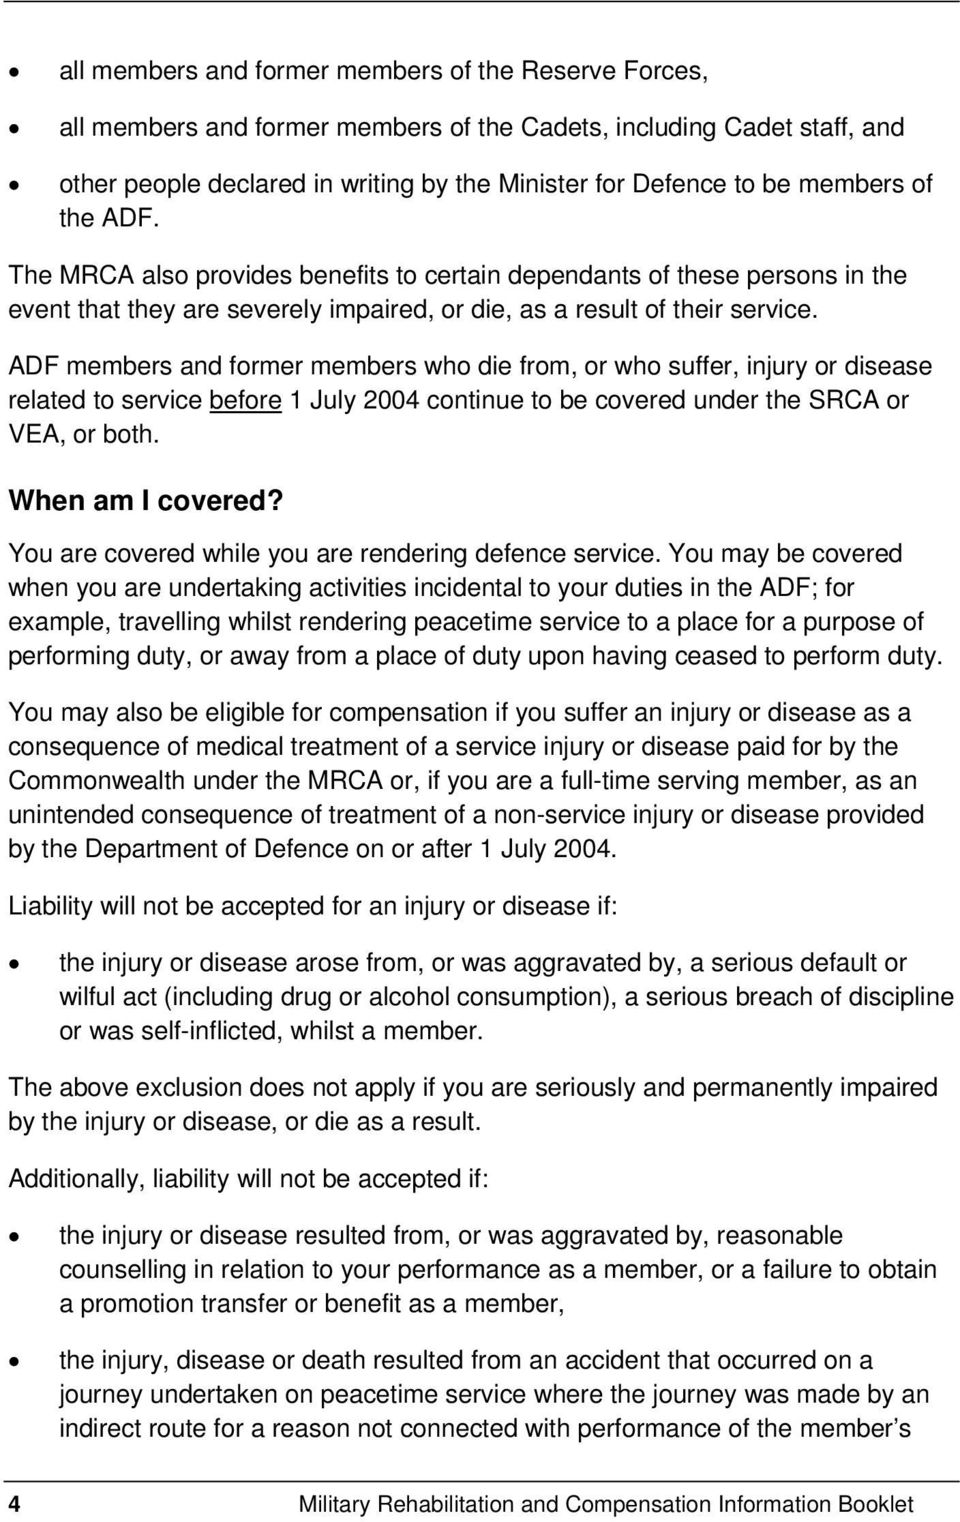 ADF members and former members who die from, or who suffer, injury or disease related to service before 1 July 2004 continue to be covered under the SRCA or VEA, or both. When am I covered?